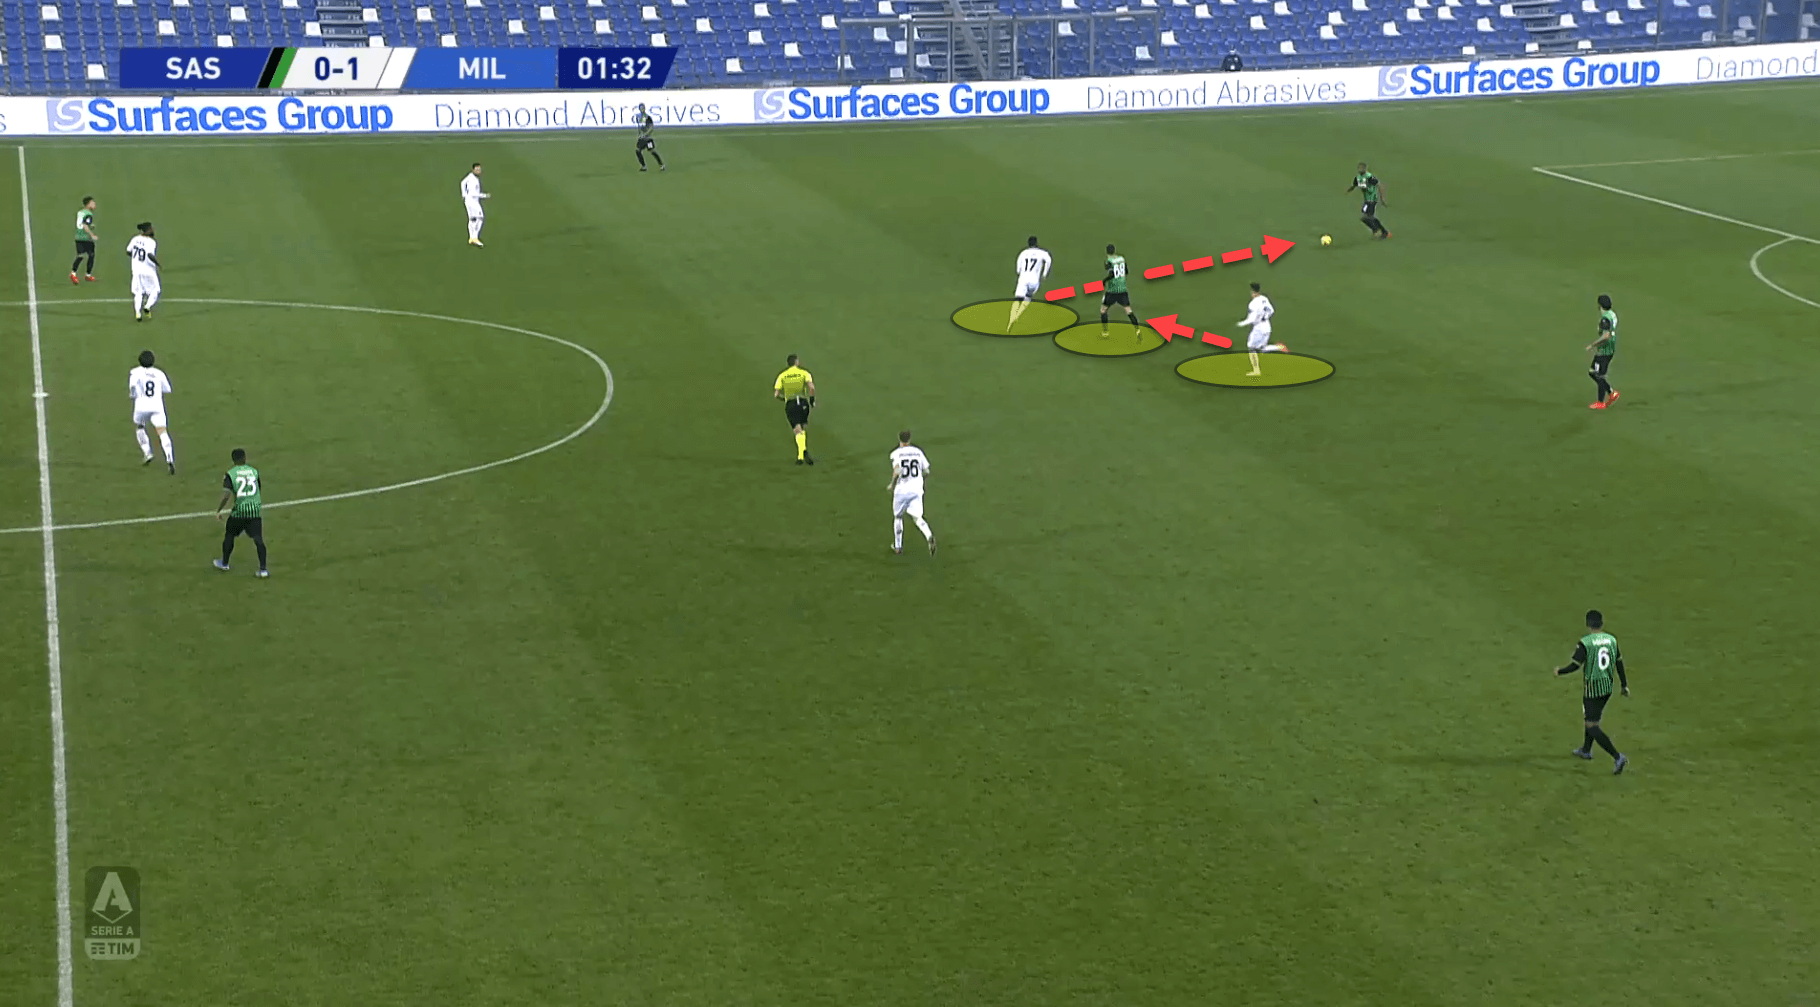 Serie A 2020/21: Sassuolo vs Milan - tactical analysis tactics